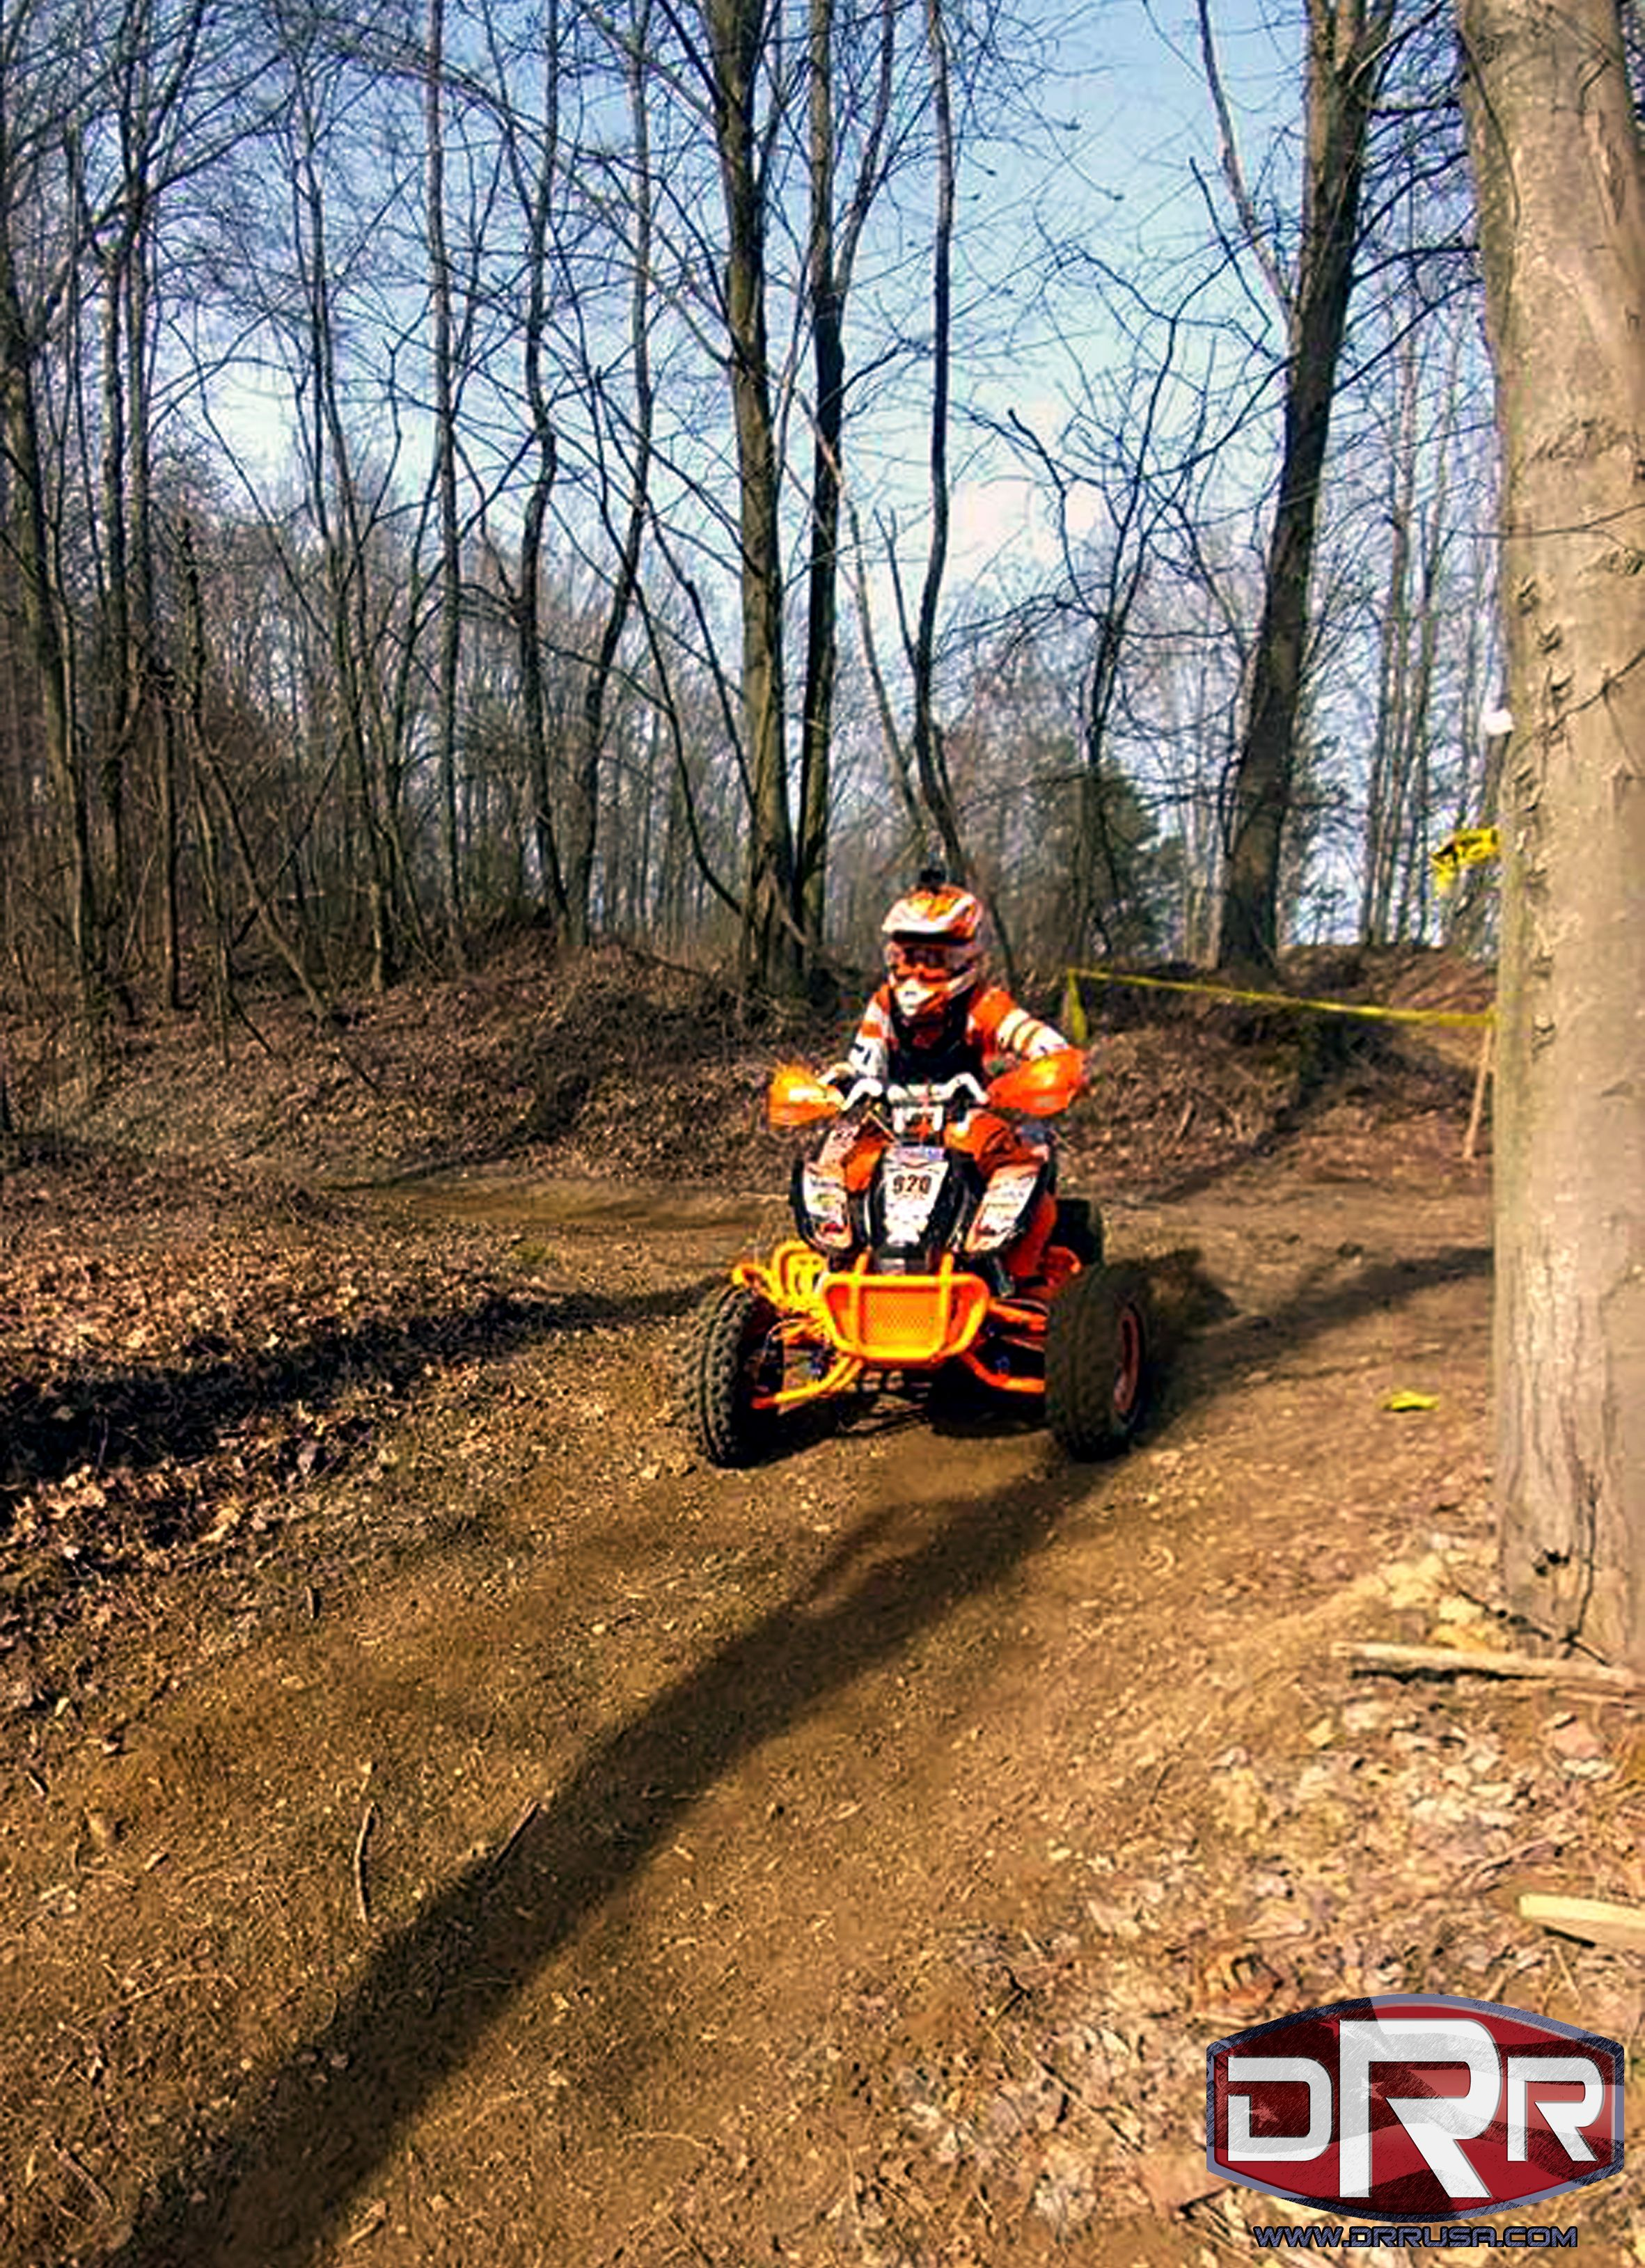 small resolution of caiden hays at eroc round 1 crow canyon riding his drr drx 90cc atv mod placed 1st overall